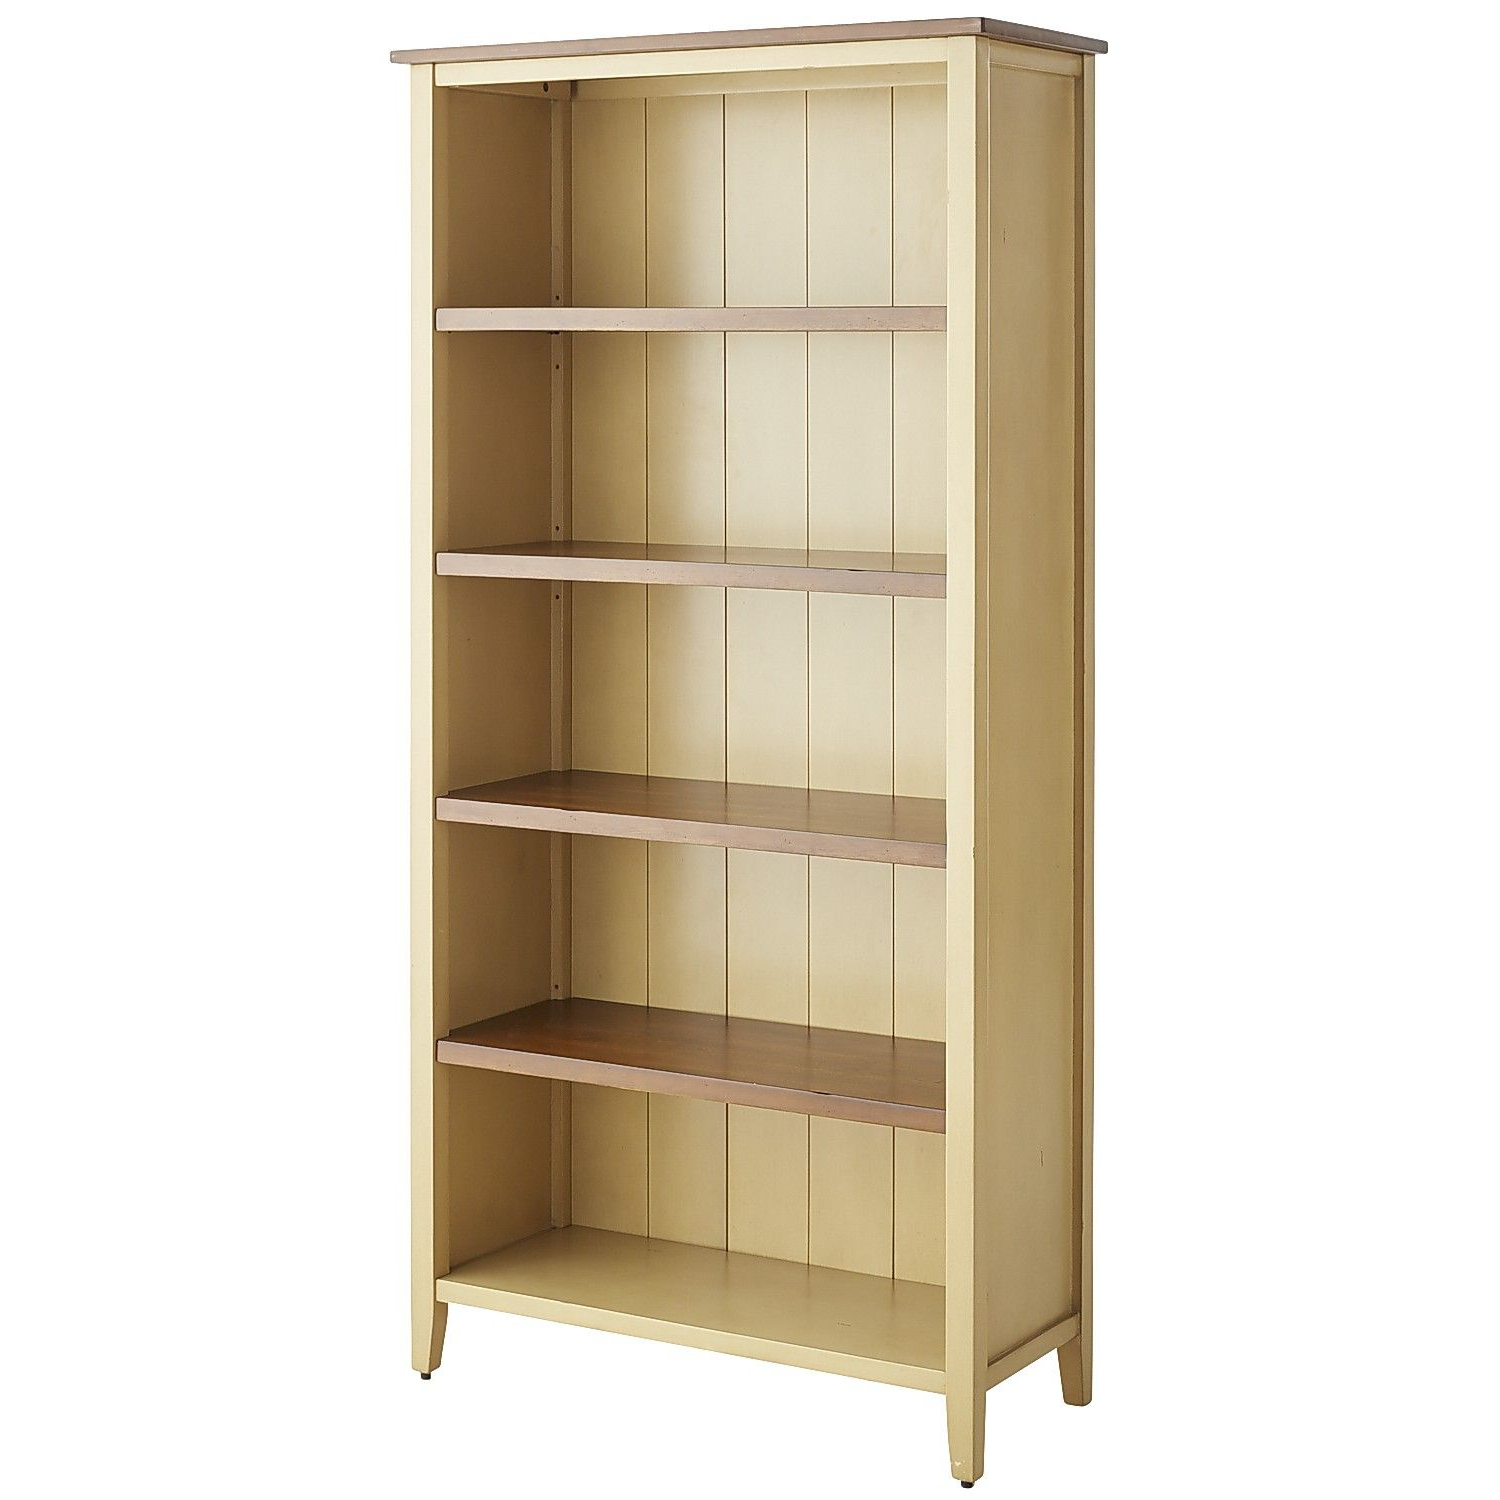 Salina Standard Bookcases Throughout 2020 Pin On *shelving > Bookcases & Standing Shelves* (View 20 of 20)